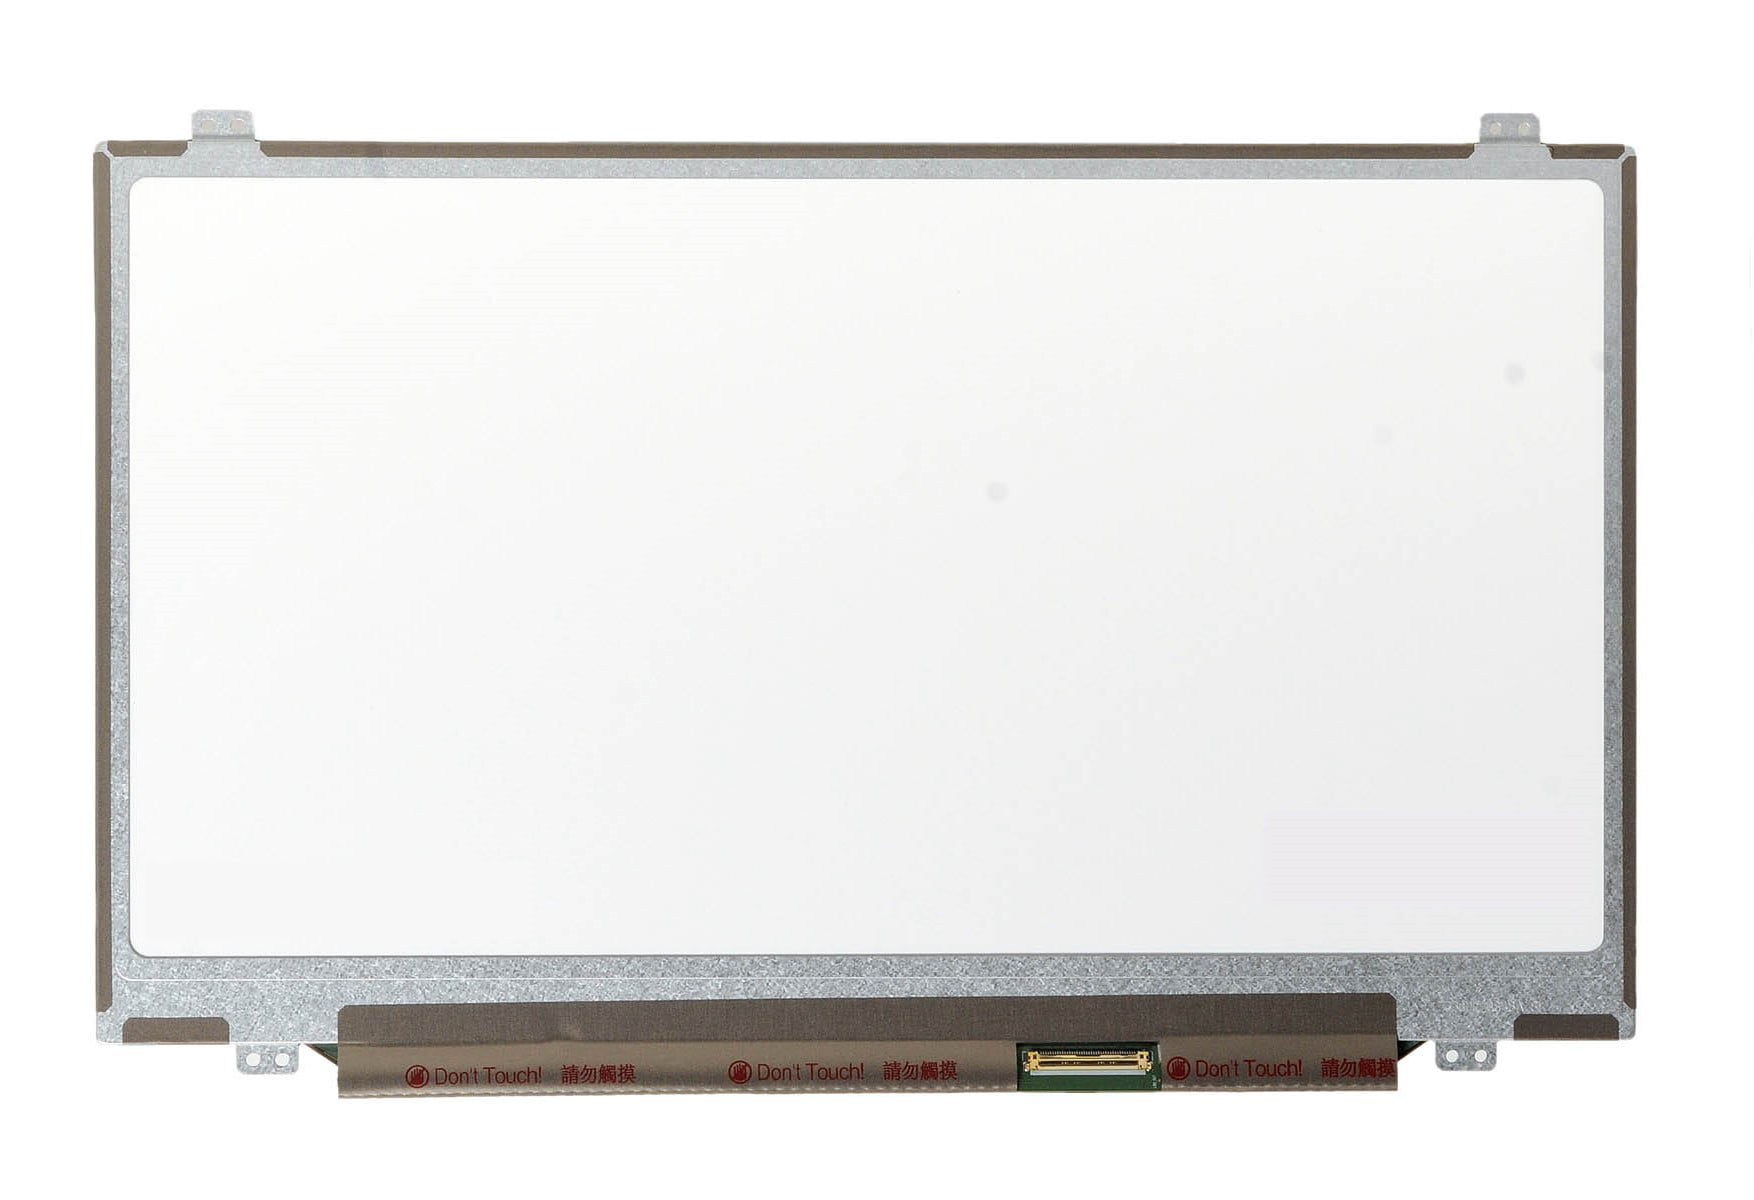 For Acer Aspire 4820T-6447 TIMELINEX 4830T-6899 4830TG SERIES 14.0